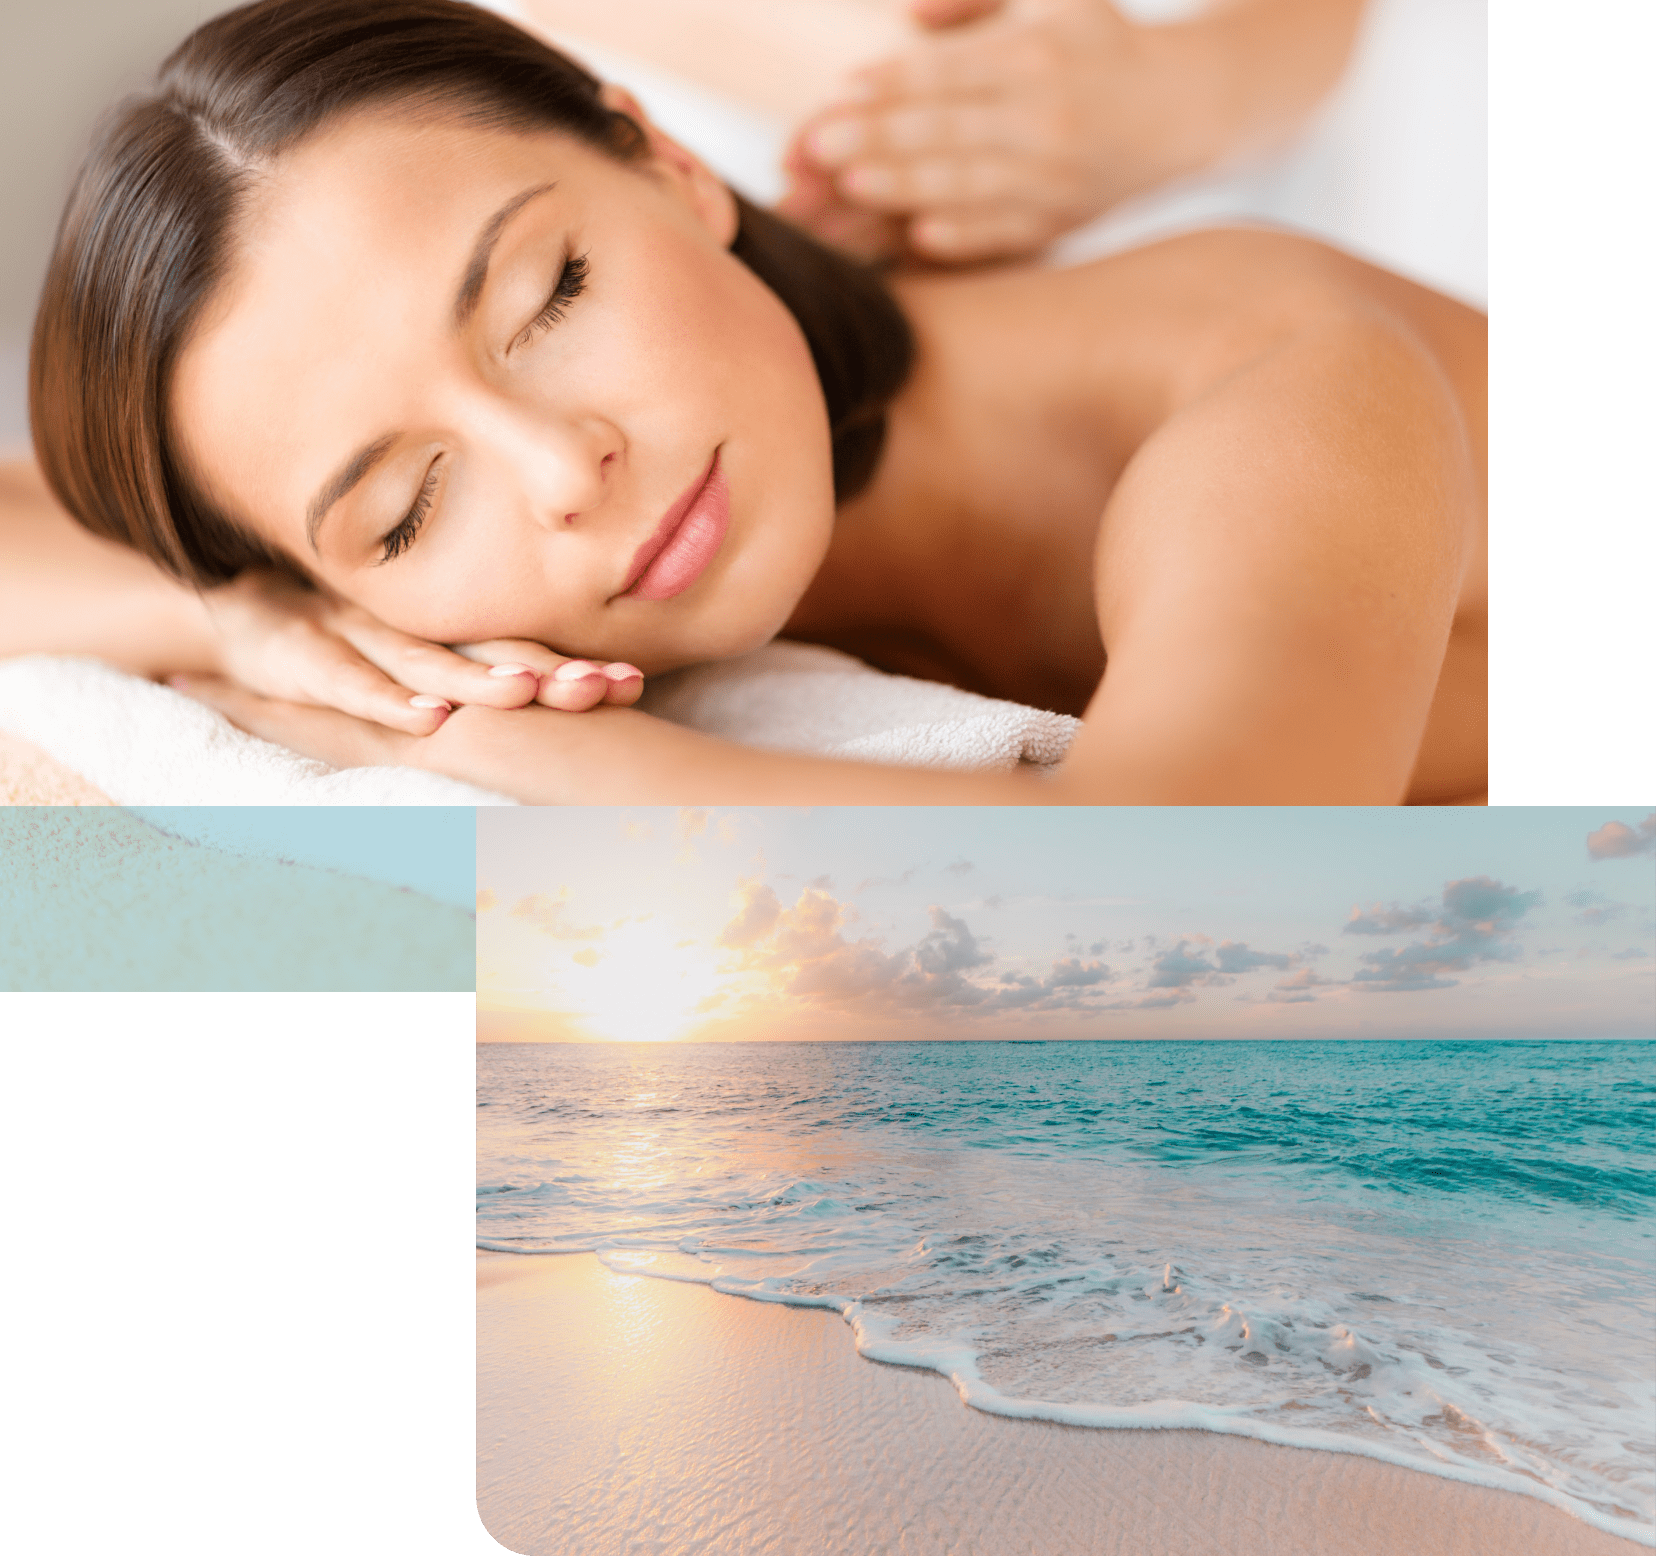 Image of lady getting massage and image of beach.